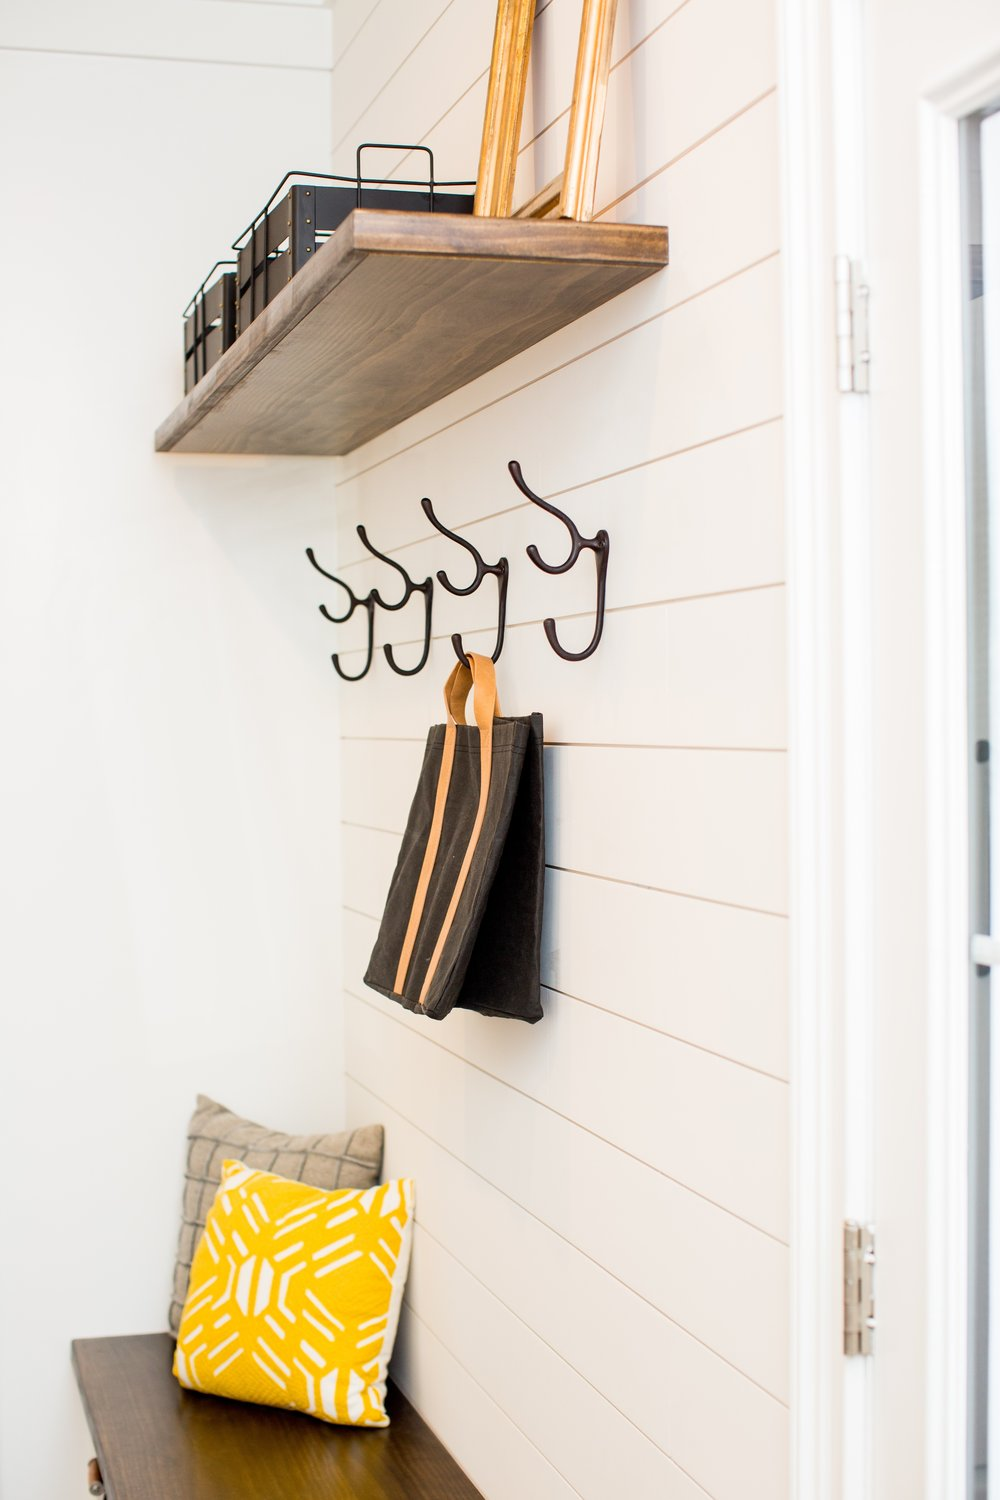 """""""She did not disappoint."""" - We engaged Kimberly to redesign our new construction pantry and mudroom and she did not disappoint. We wanted a farmhouse design and she nailed it - shiplap, barn door, etc. Kimberly is very easy to work with, provided great visuals and was involved from design phase through project completion— A.C"""